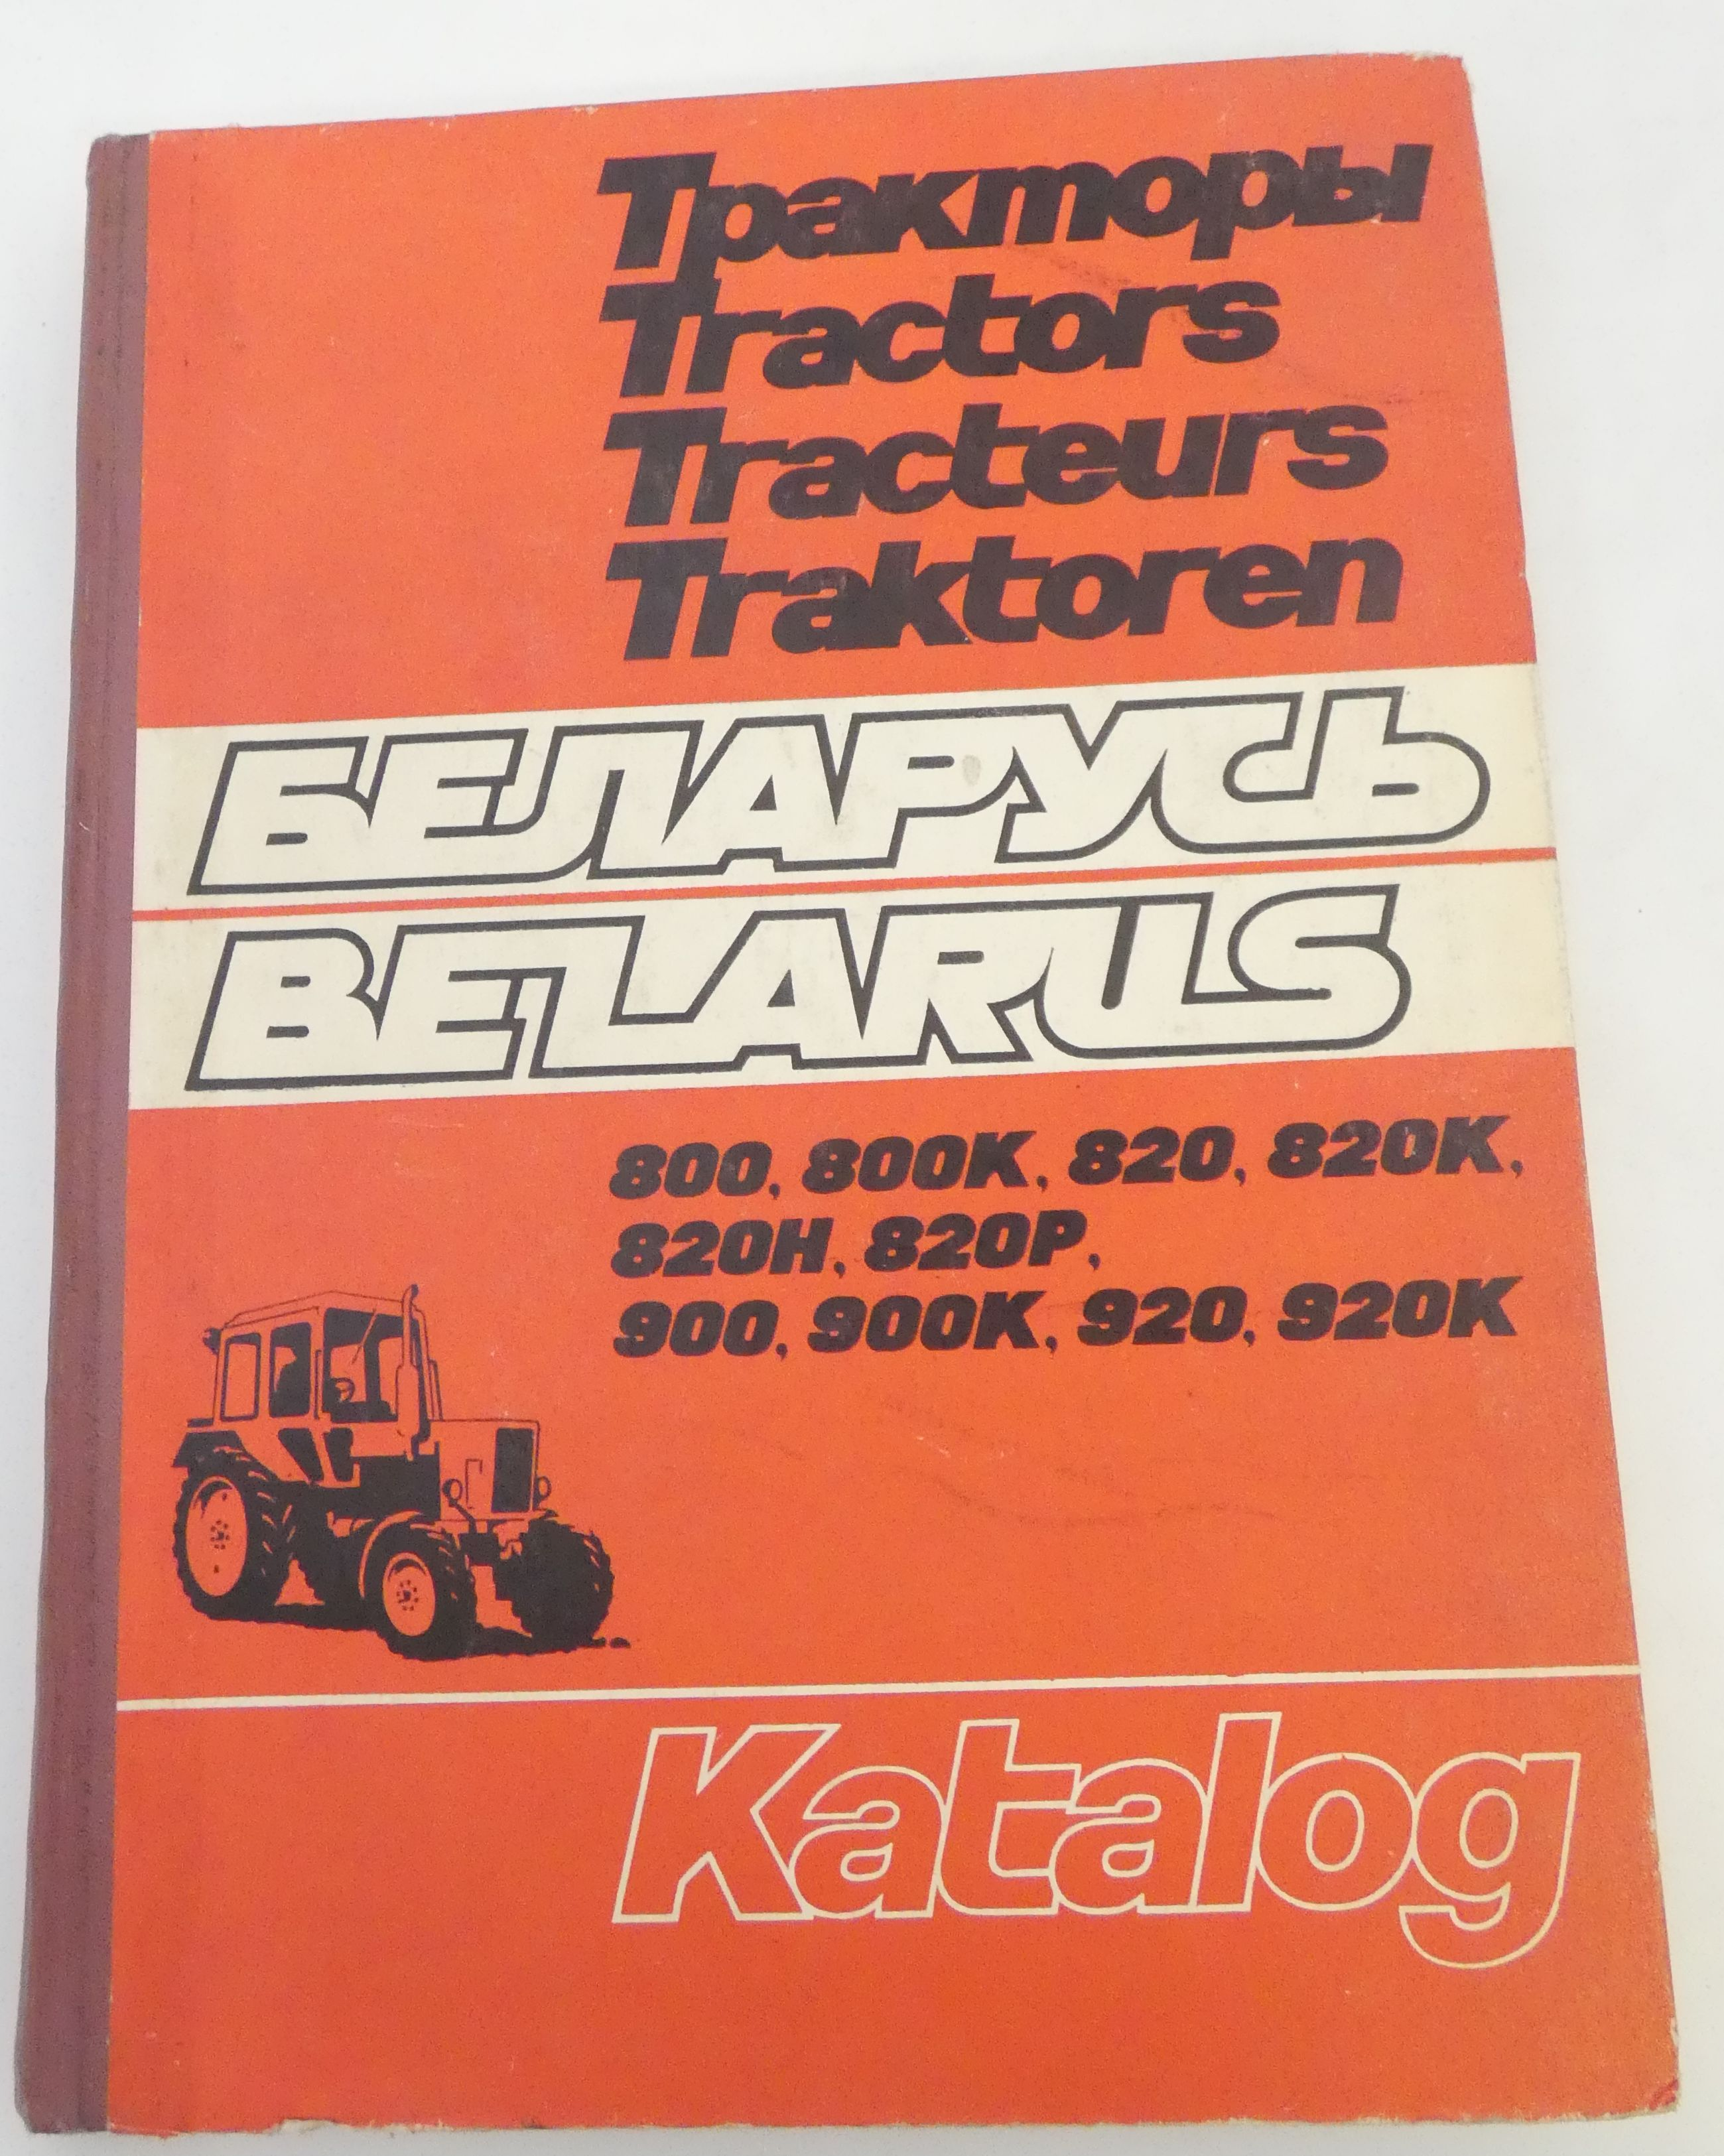 Belarus tractors 800, 800K, 820, 820K, 820H, 820P, 900, 900K, 920, 920K parts catalogue